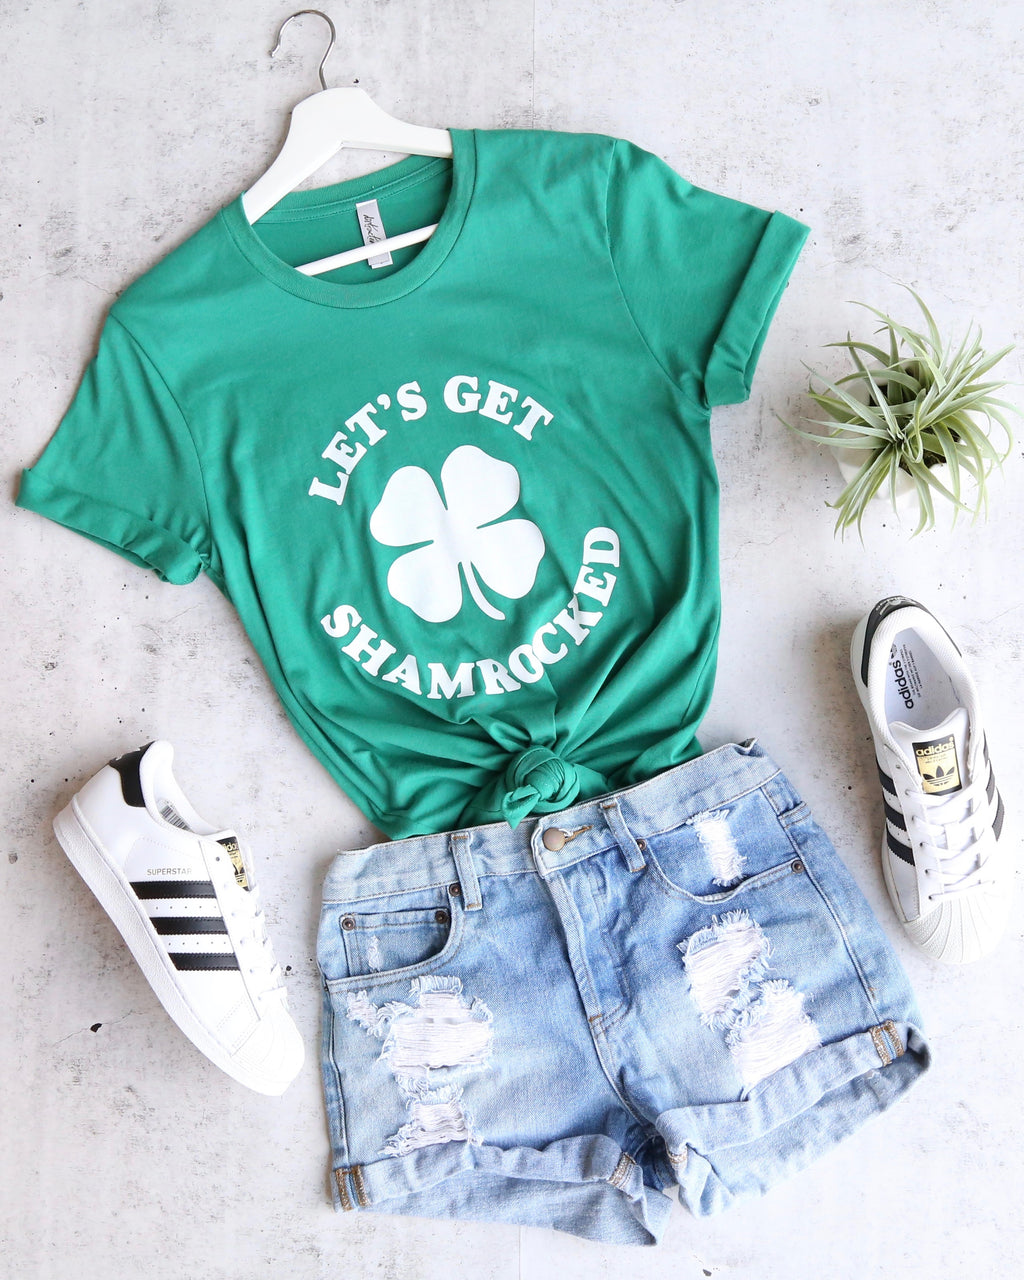 Distracted - Let's Get Shamrocked Saint Patrick's Day Unisex or Women's T-Shirt in Kelly Green